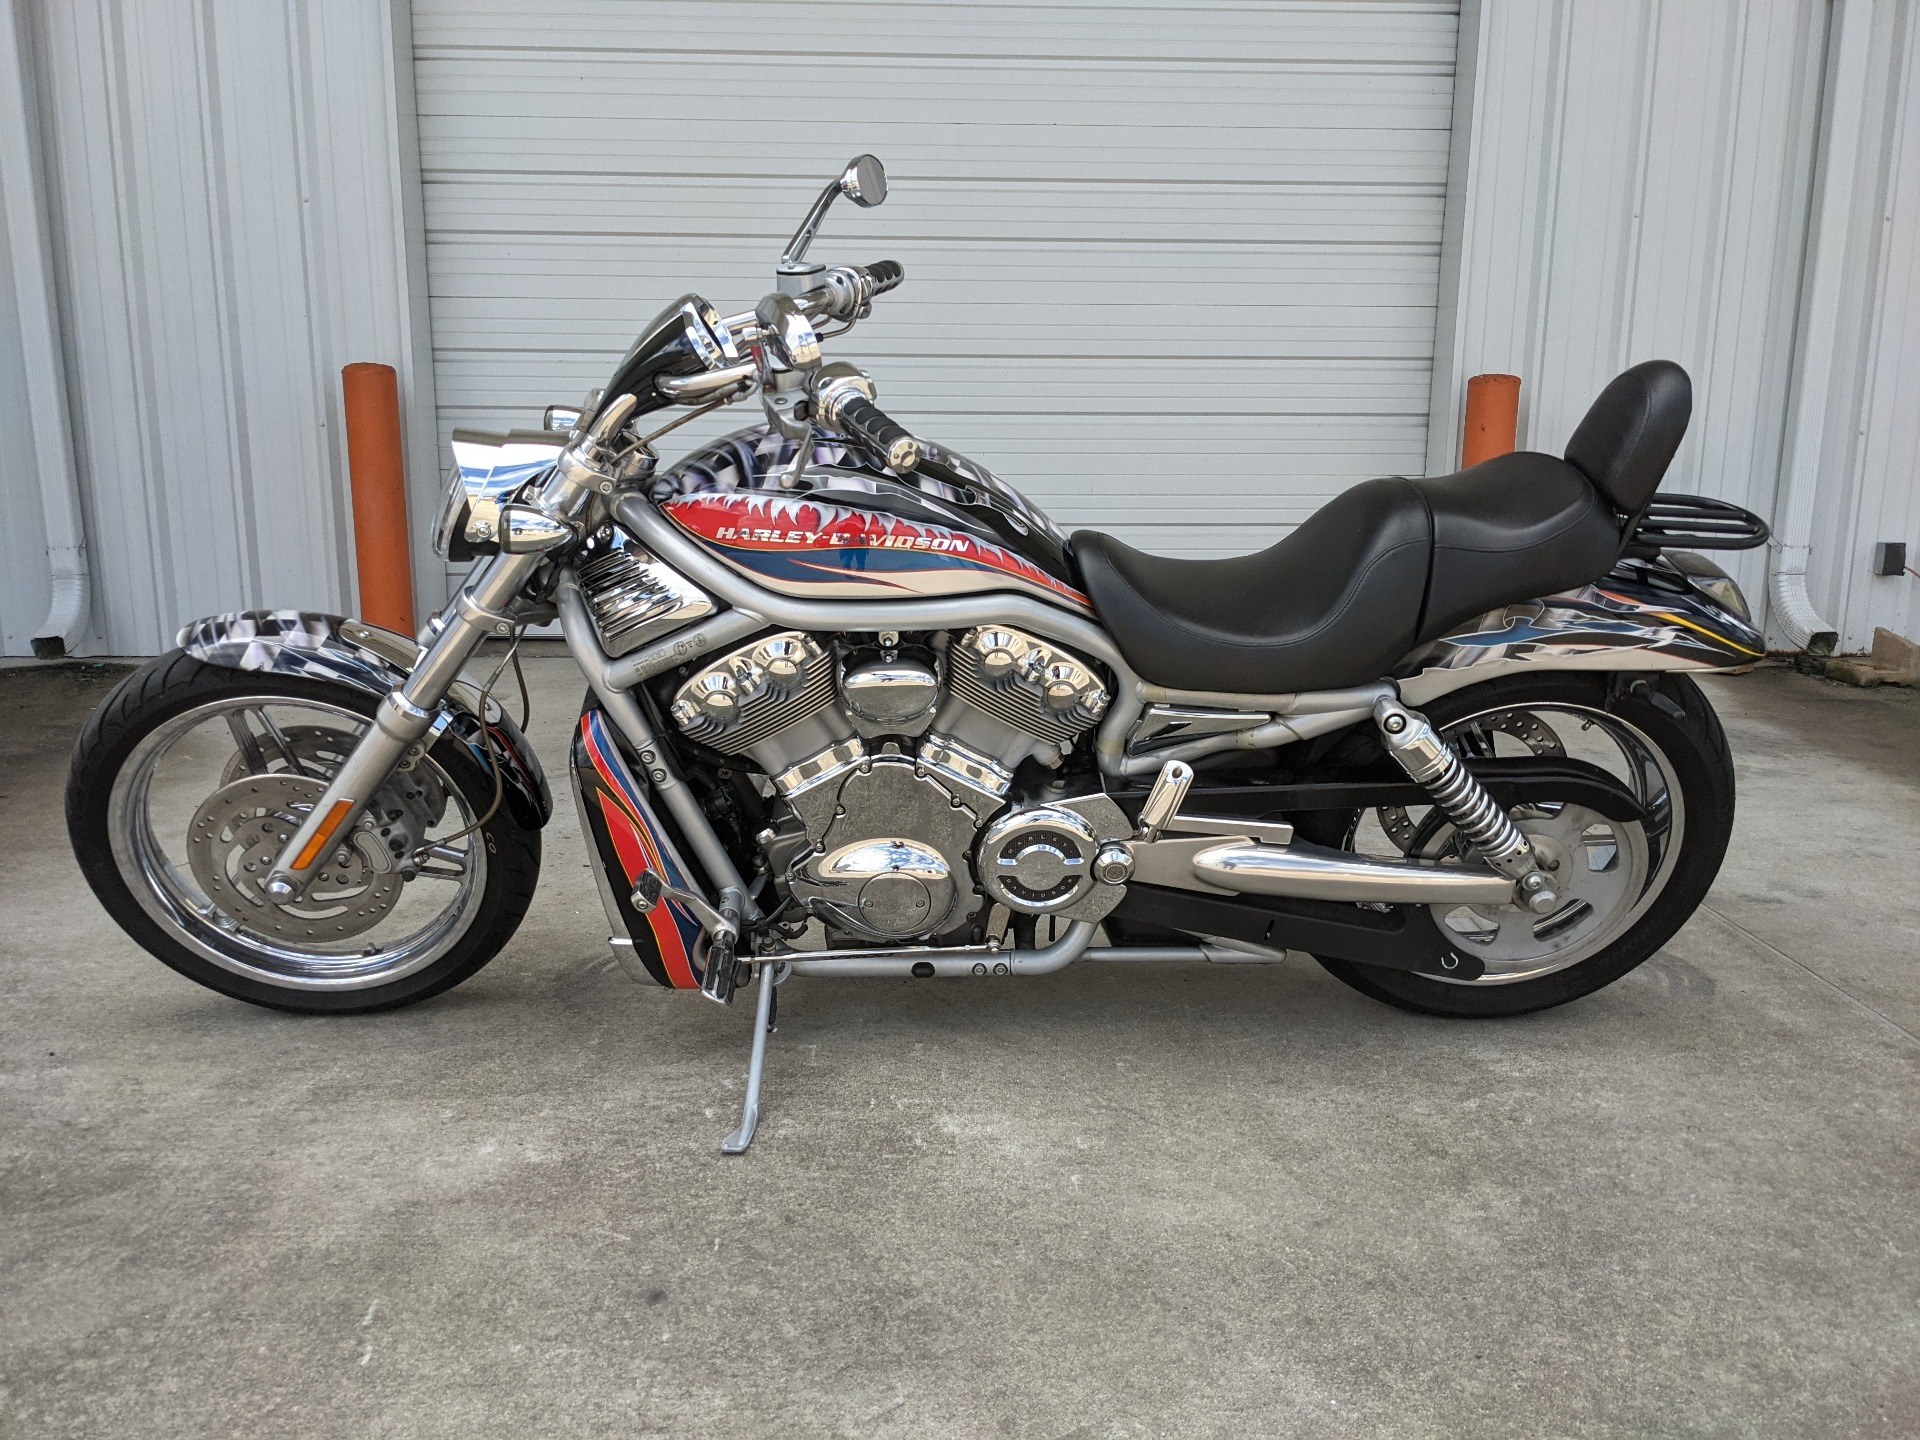 2003 Harley V-Rod for sale mint - Photo 2